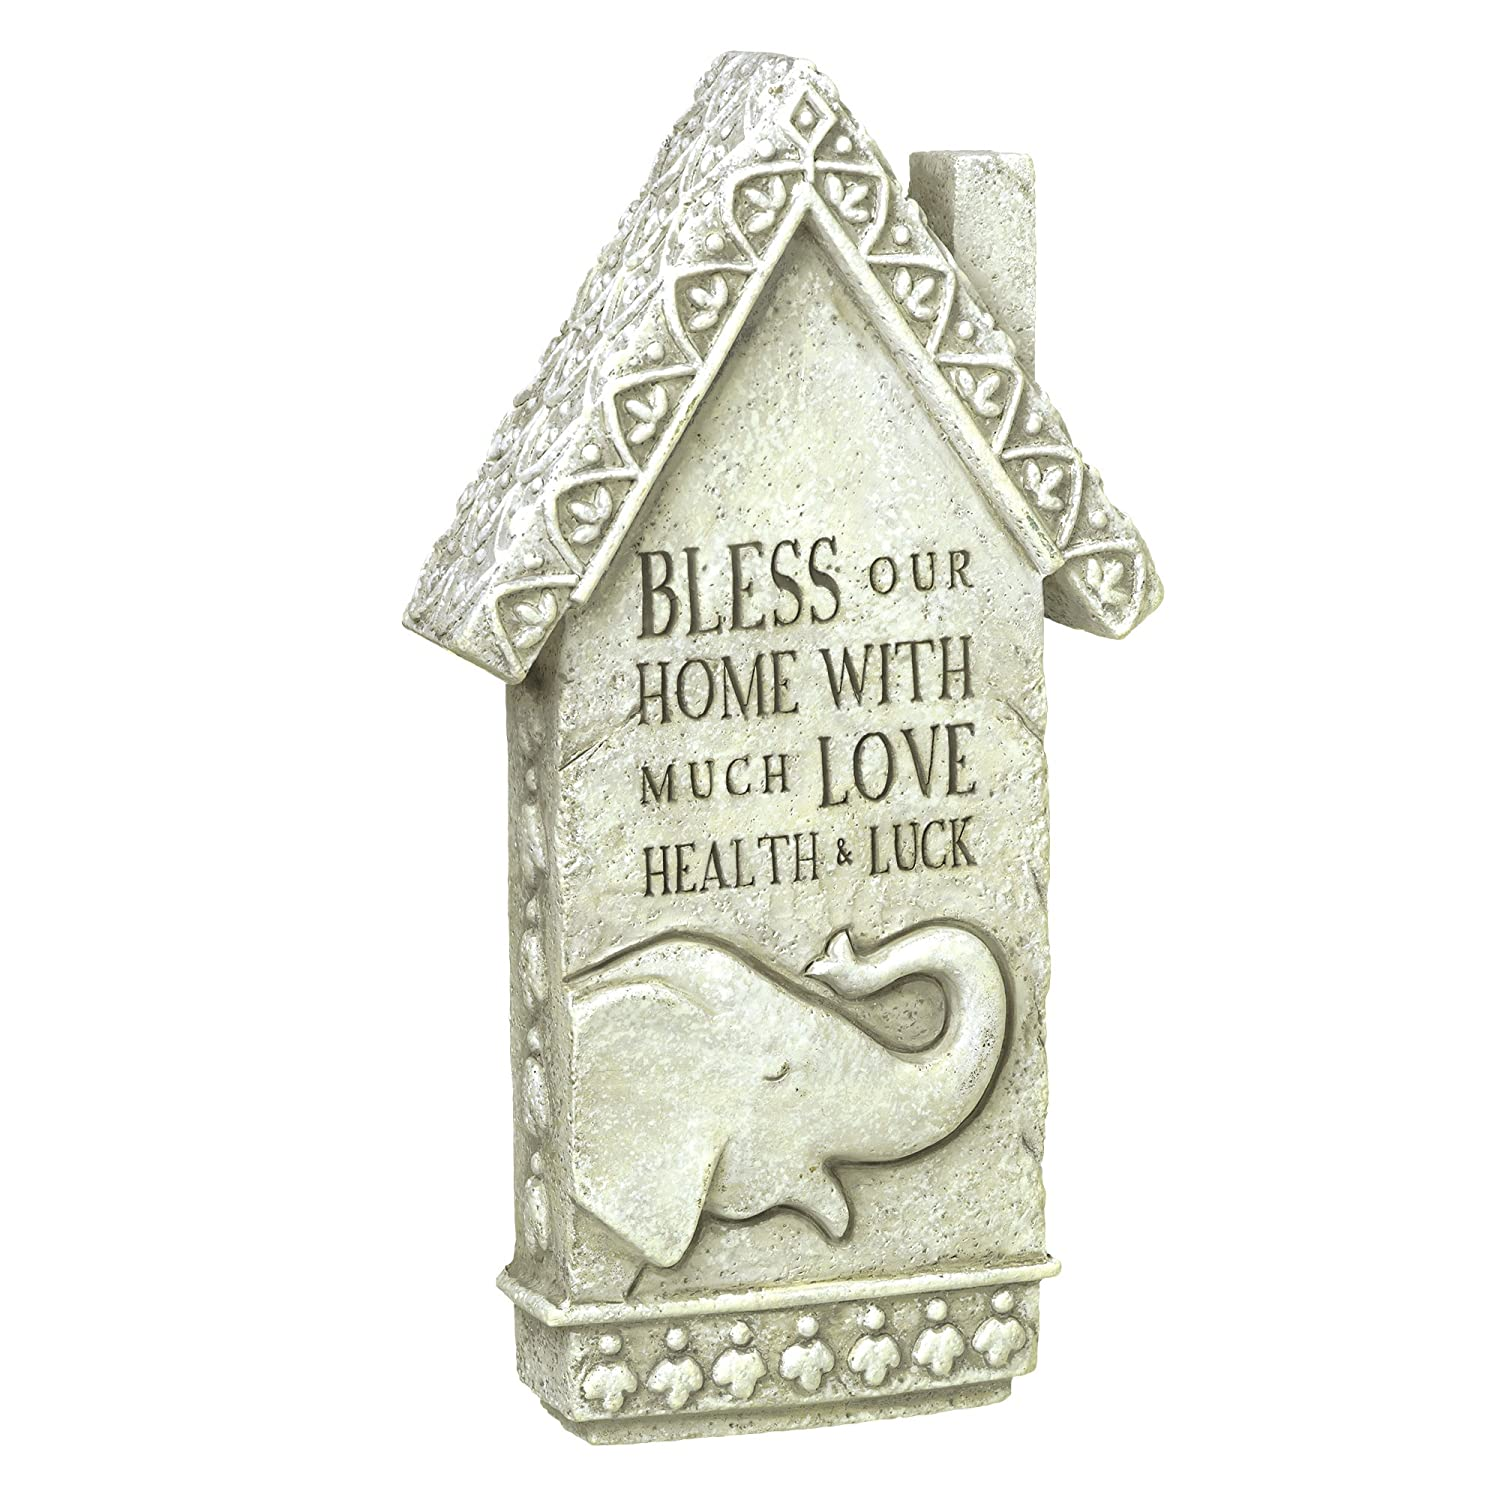 Grasslands Road House Blessing Plaque, 8-Inch, Gray, 4-Pack